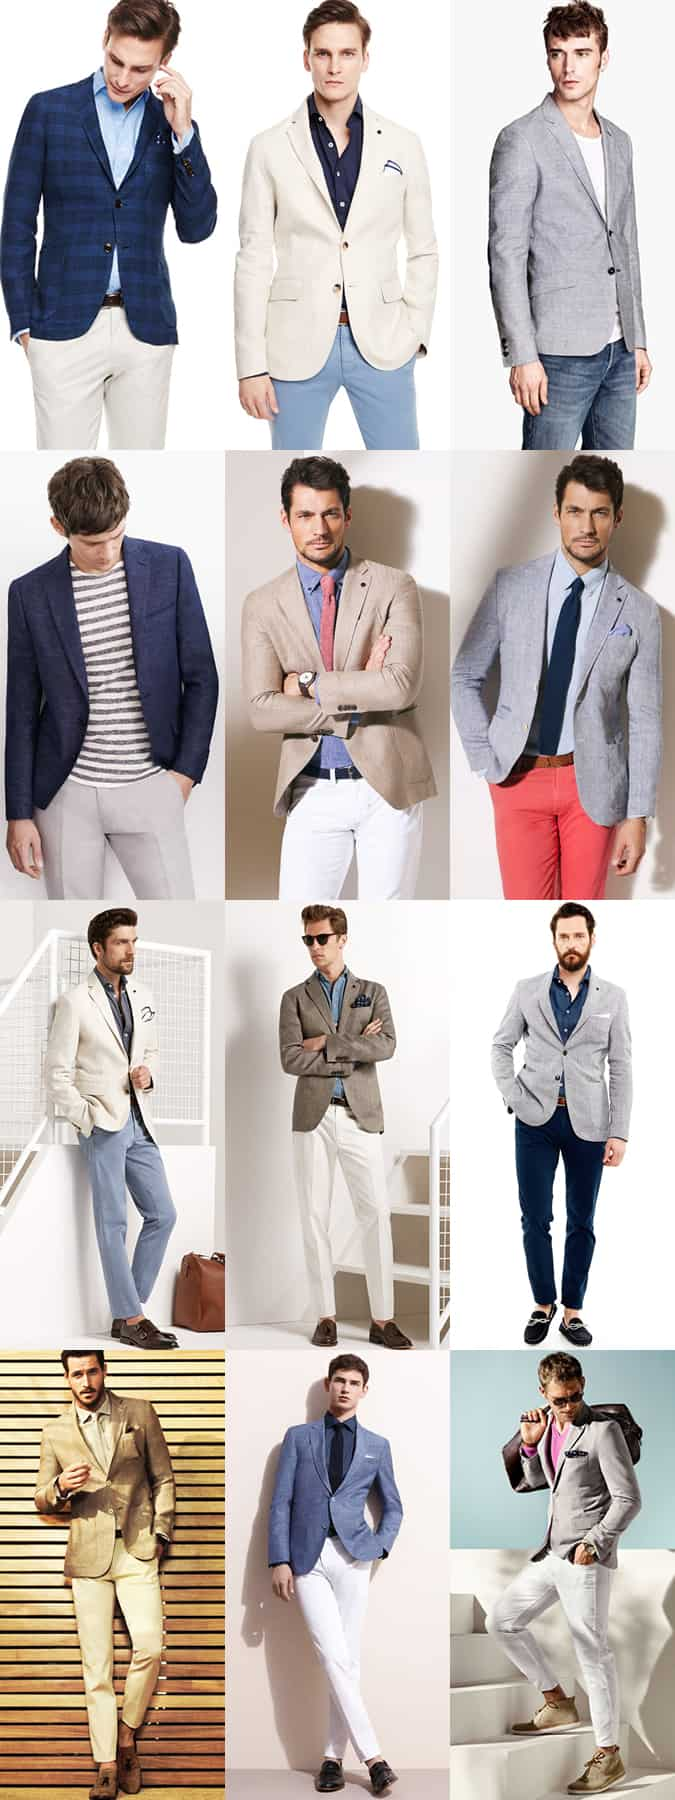 Men's Linen Blazer Smart-Casual Outfit Inspiration Lookbook